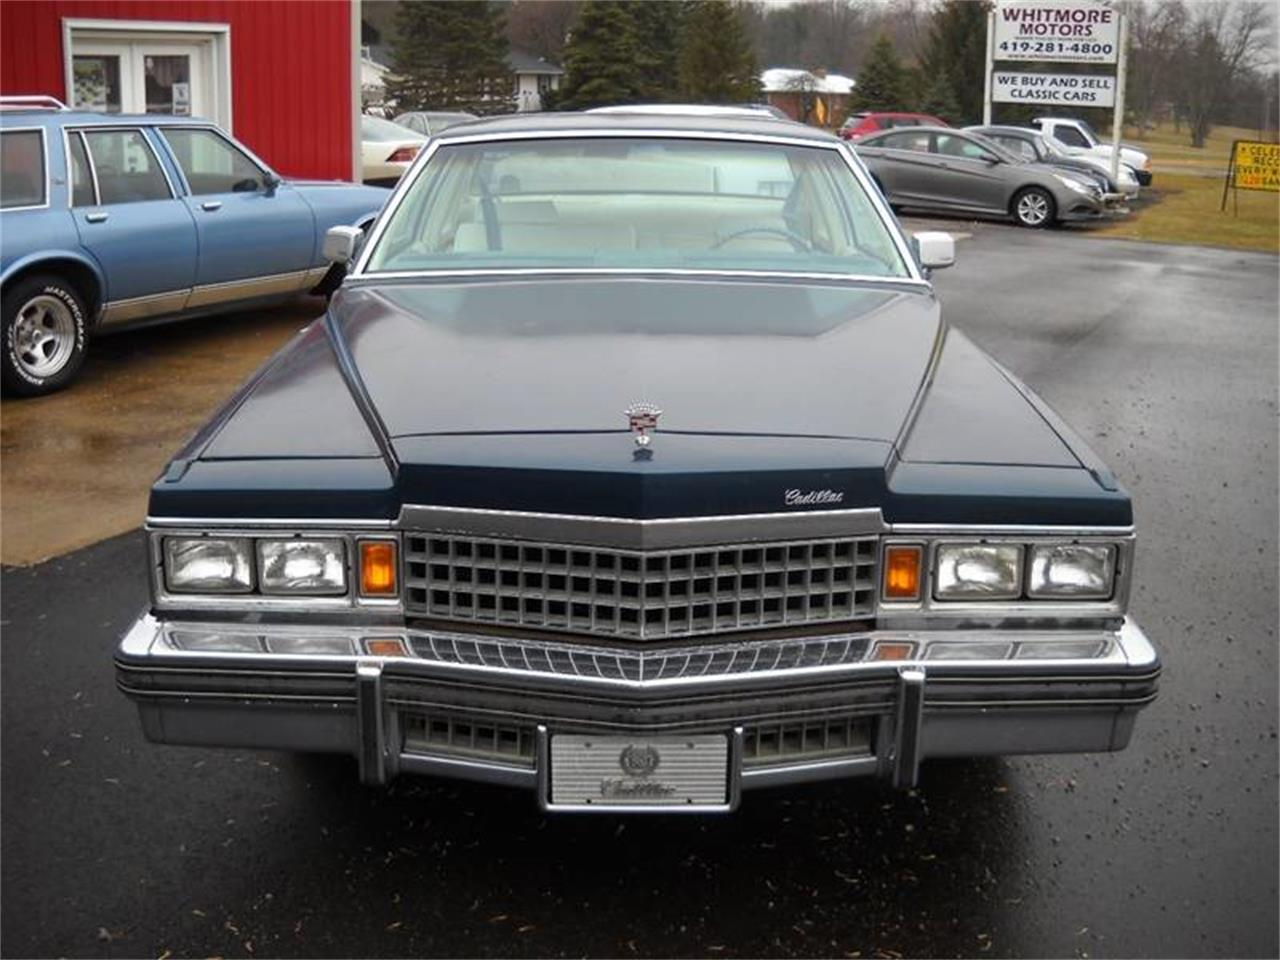 Large Picture of 1978 Cadillac DeVille - $8,550.00 Offered by Whitmore Motors - N54I